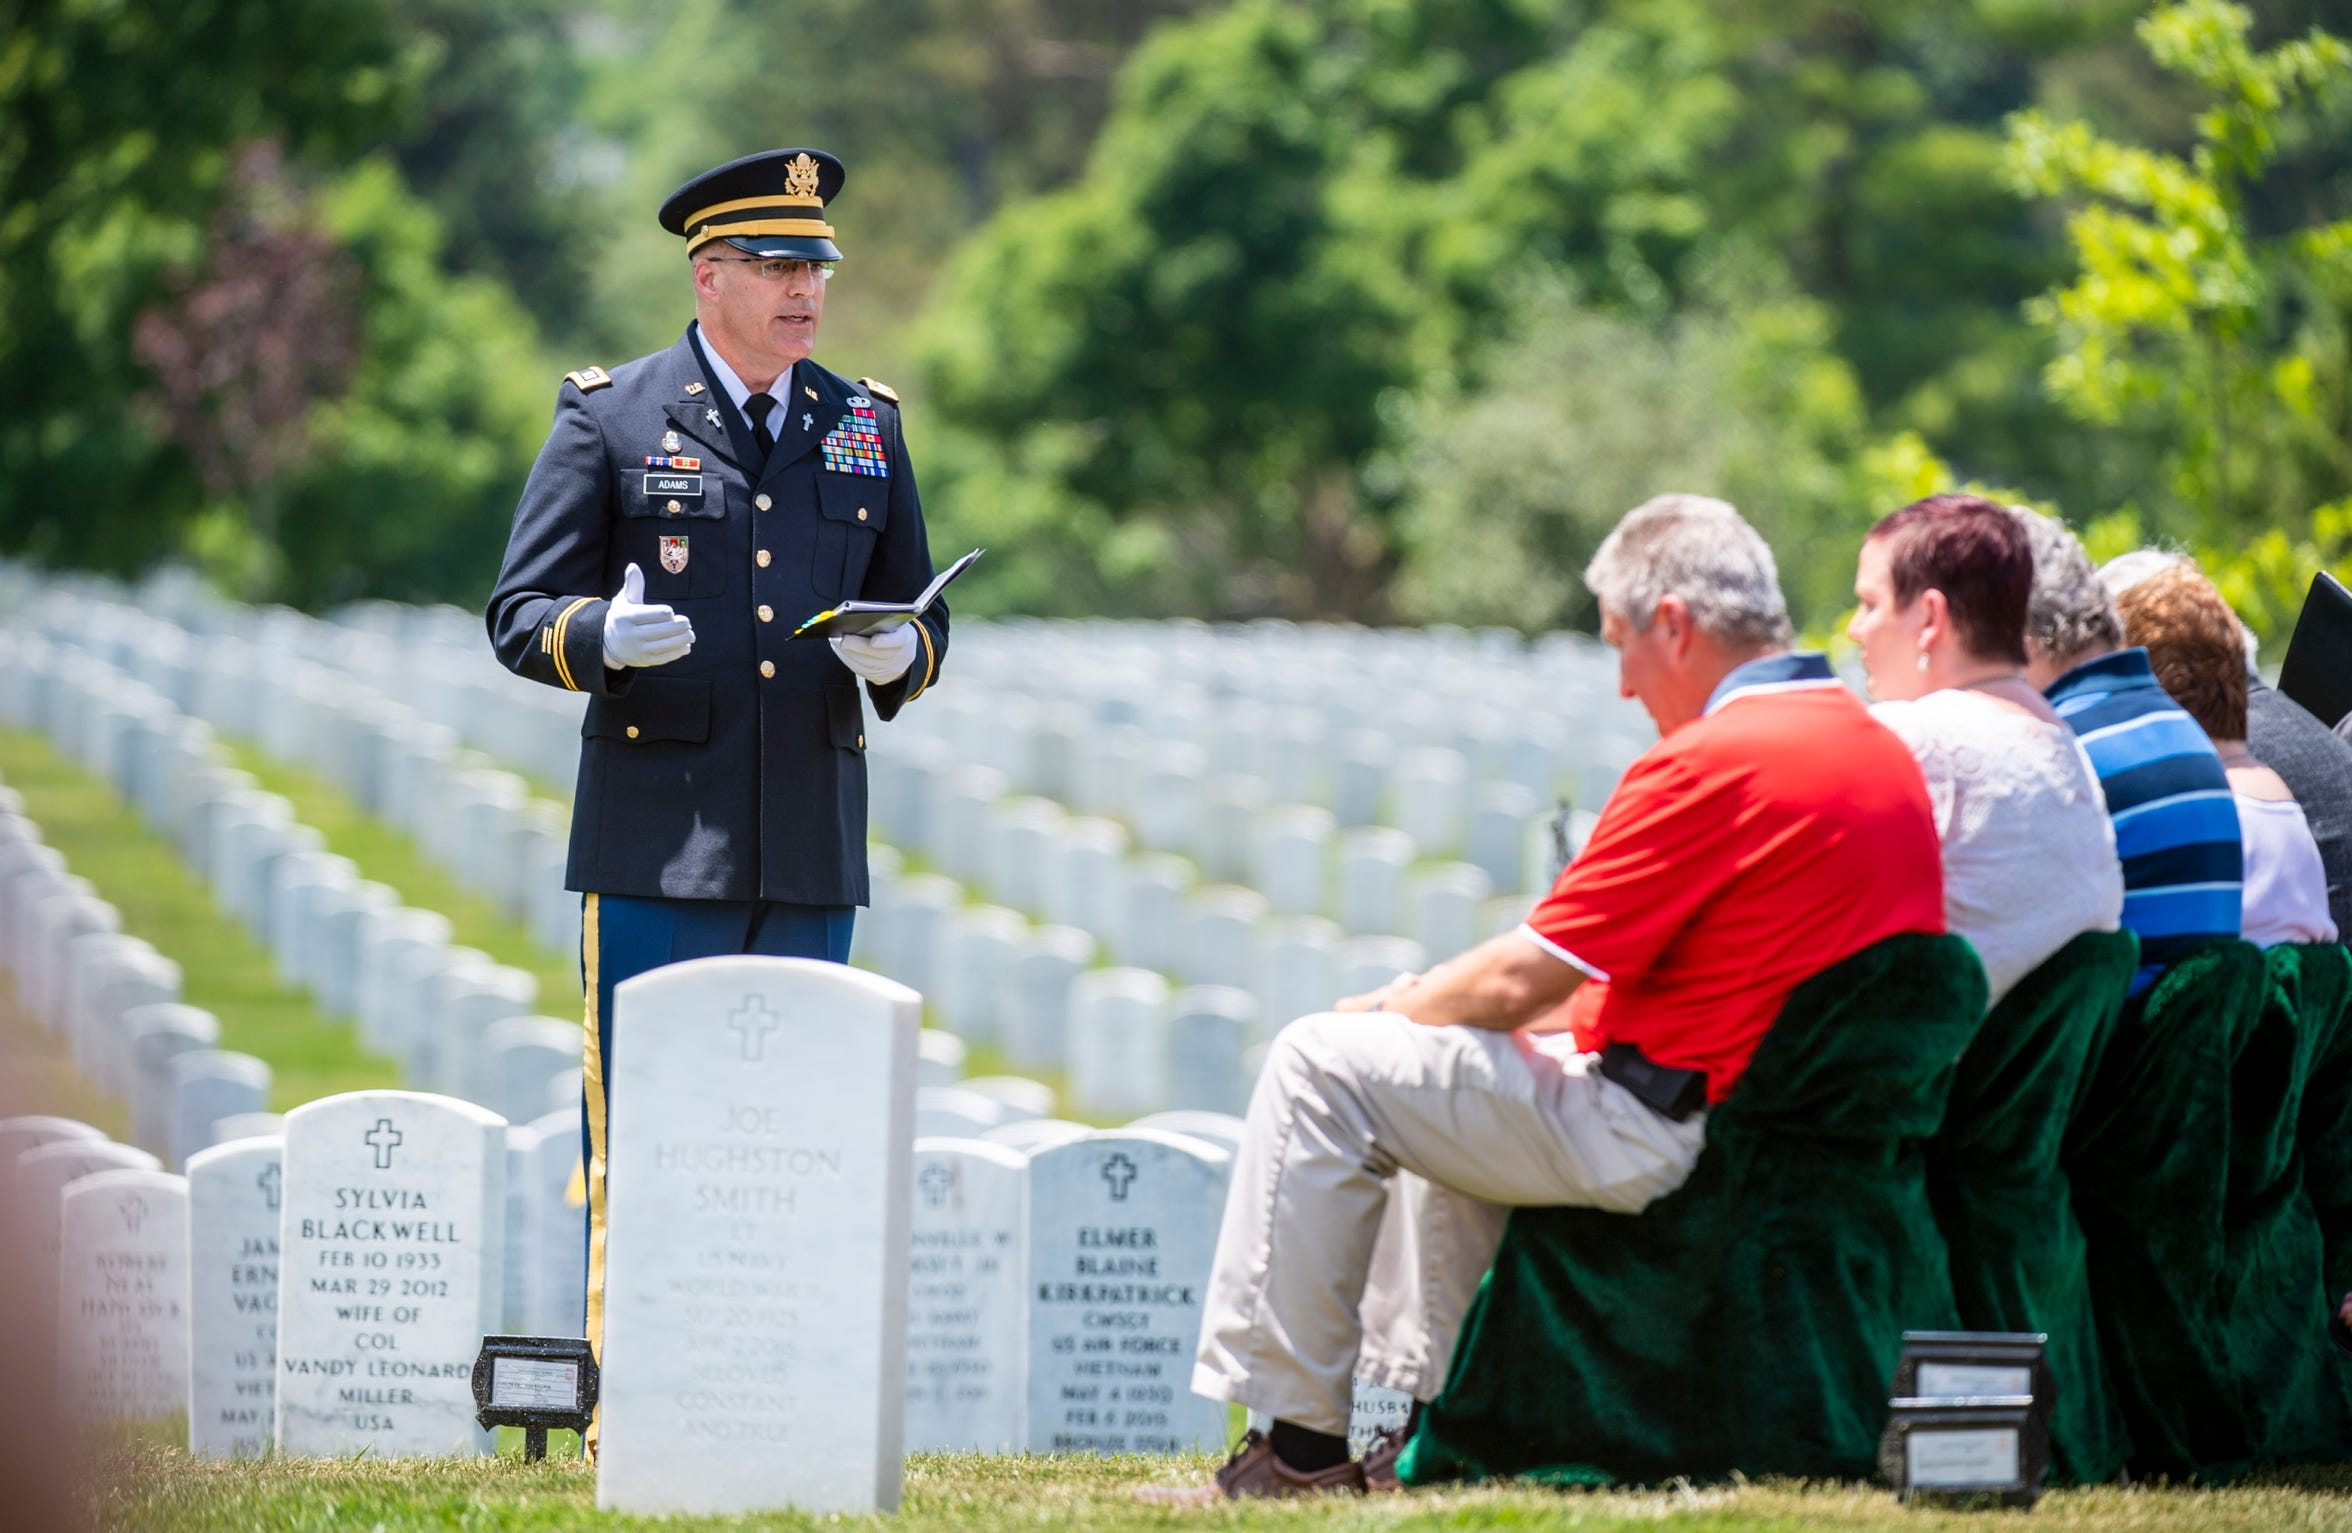 U.S. Army World War II veteran Carl Mann of Evansville, Ind., is buried at Arlington National Cemetery on June 6, 2019 in Arlington, VA.